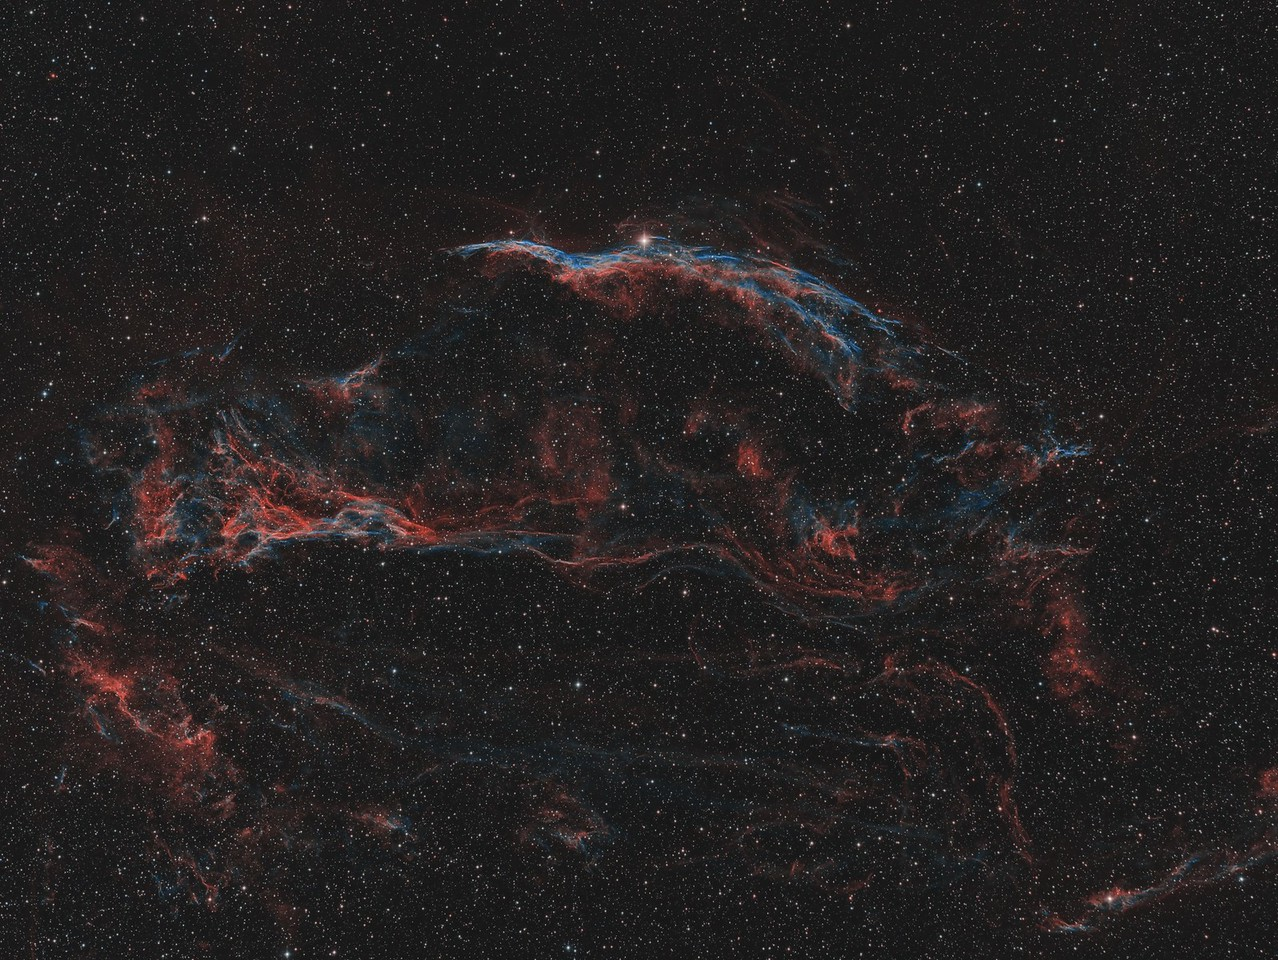 NGC6960 The Witch's Broom and Pickering's Triangle